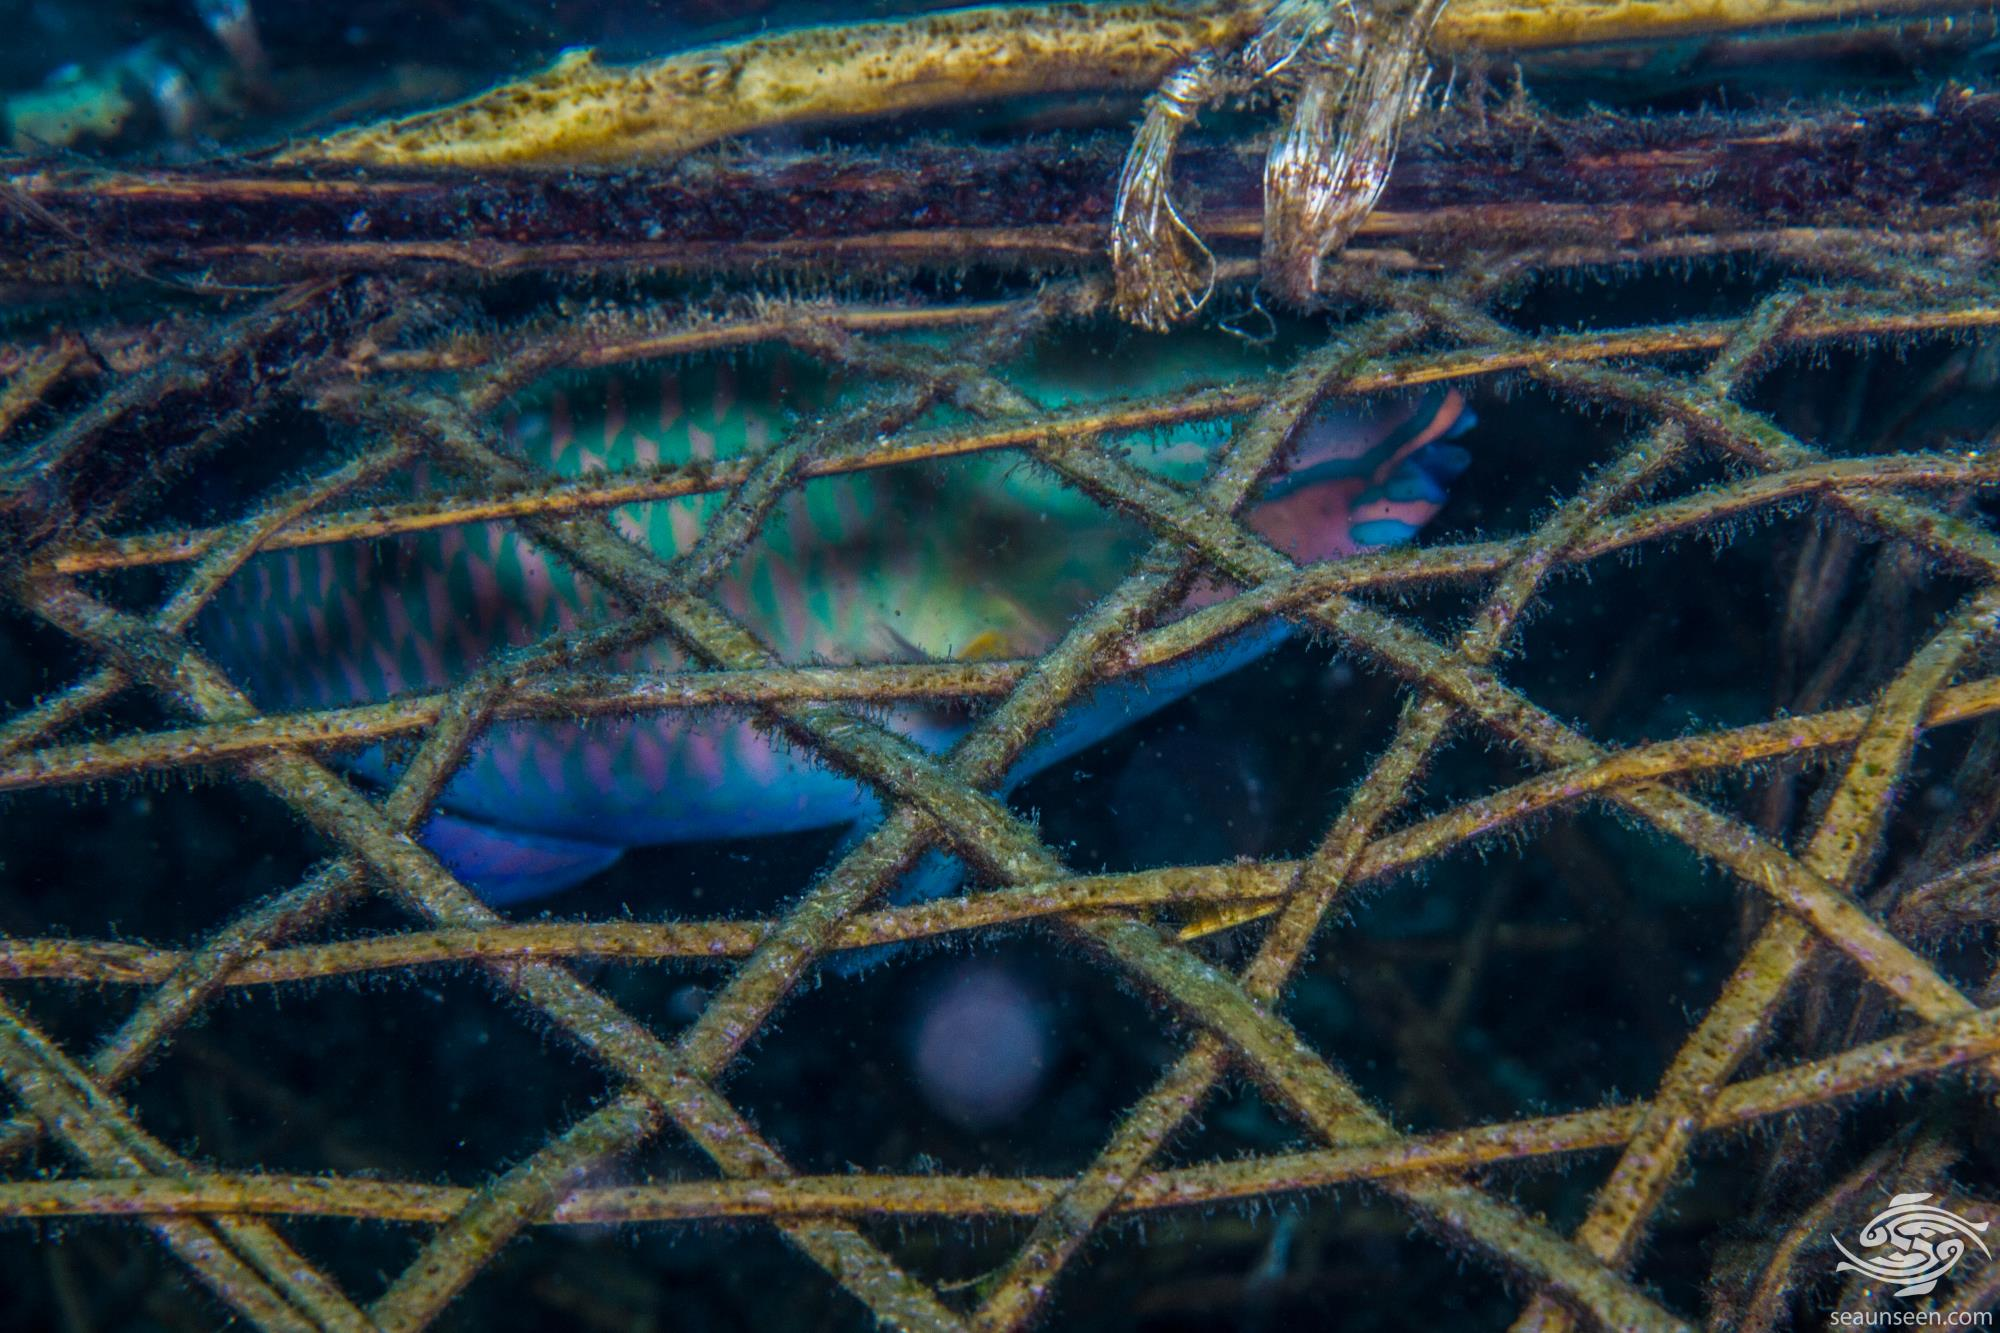 Terminal Phase Male in fish trap